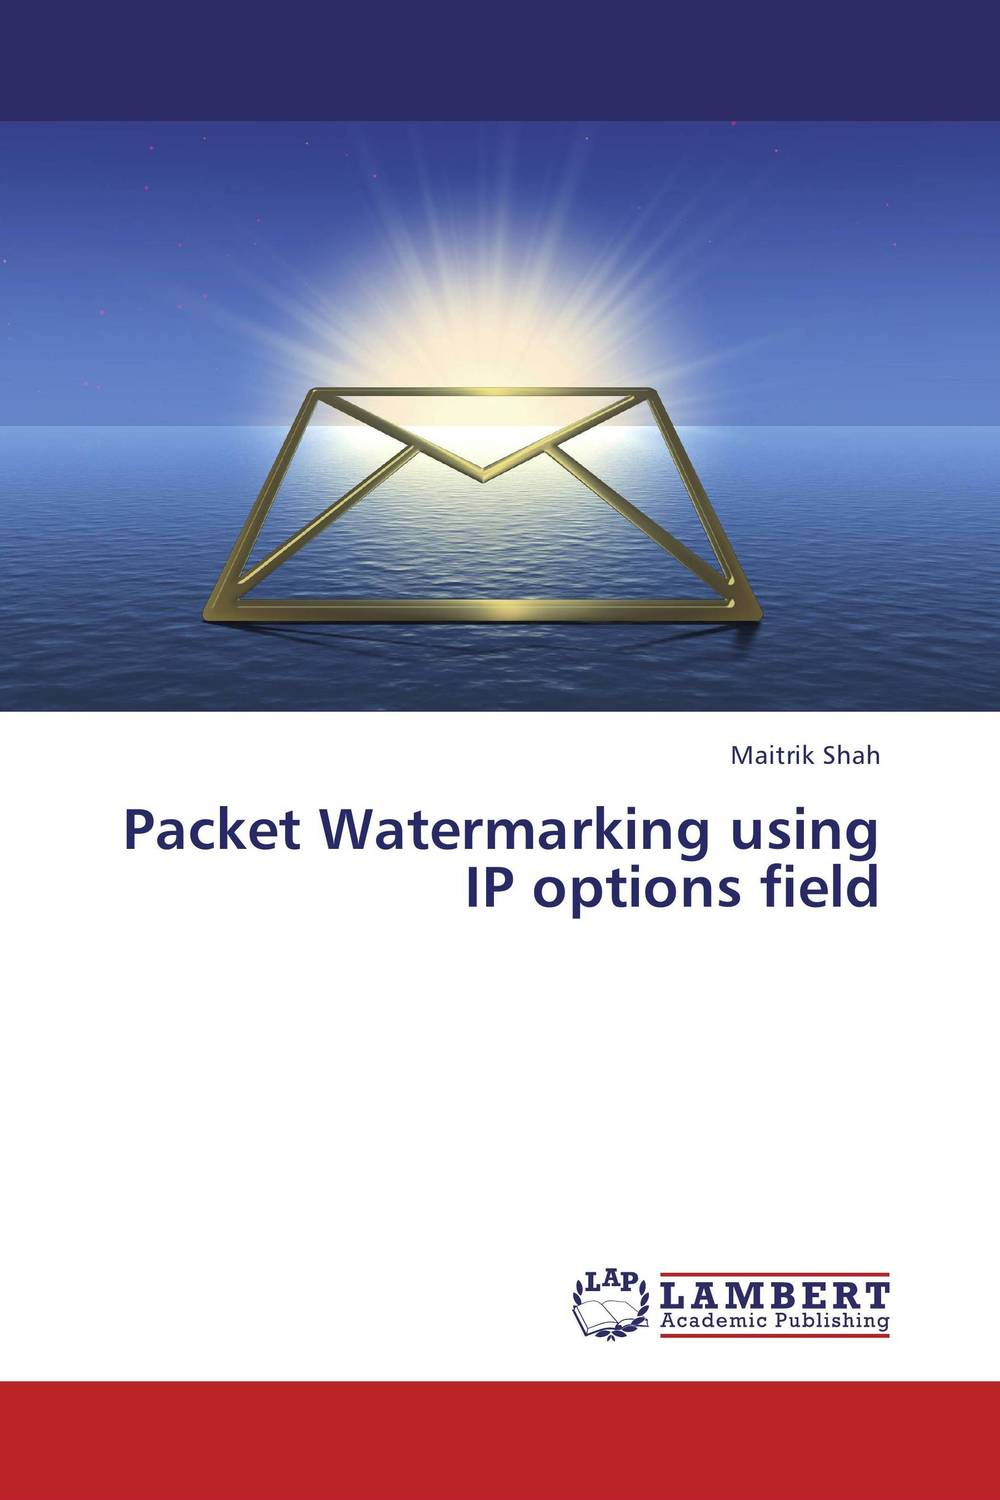 Packet Watermarking using IP options field casio bga 180 9b